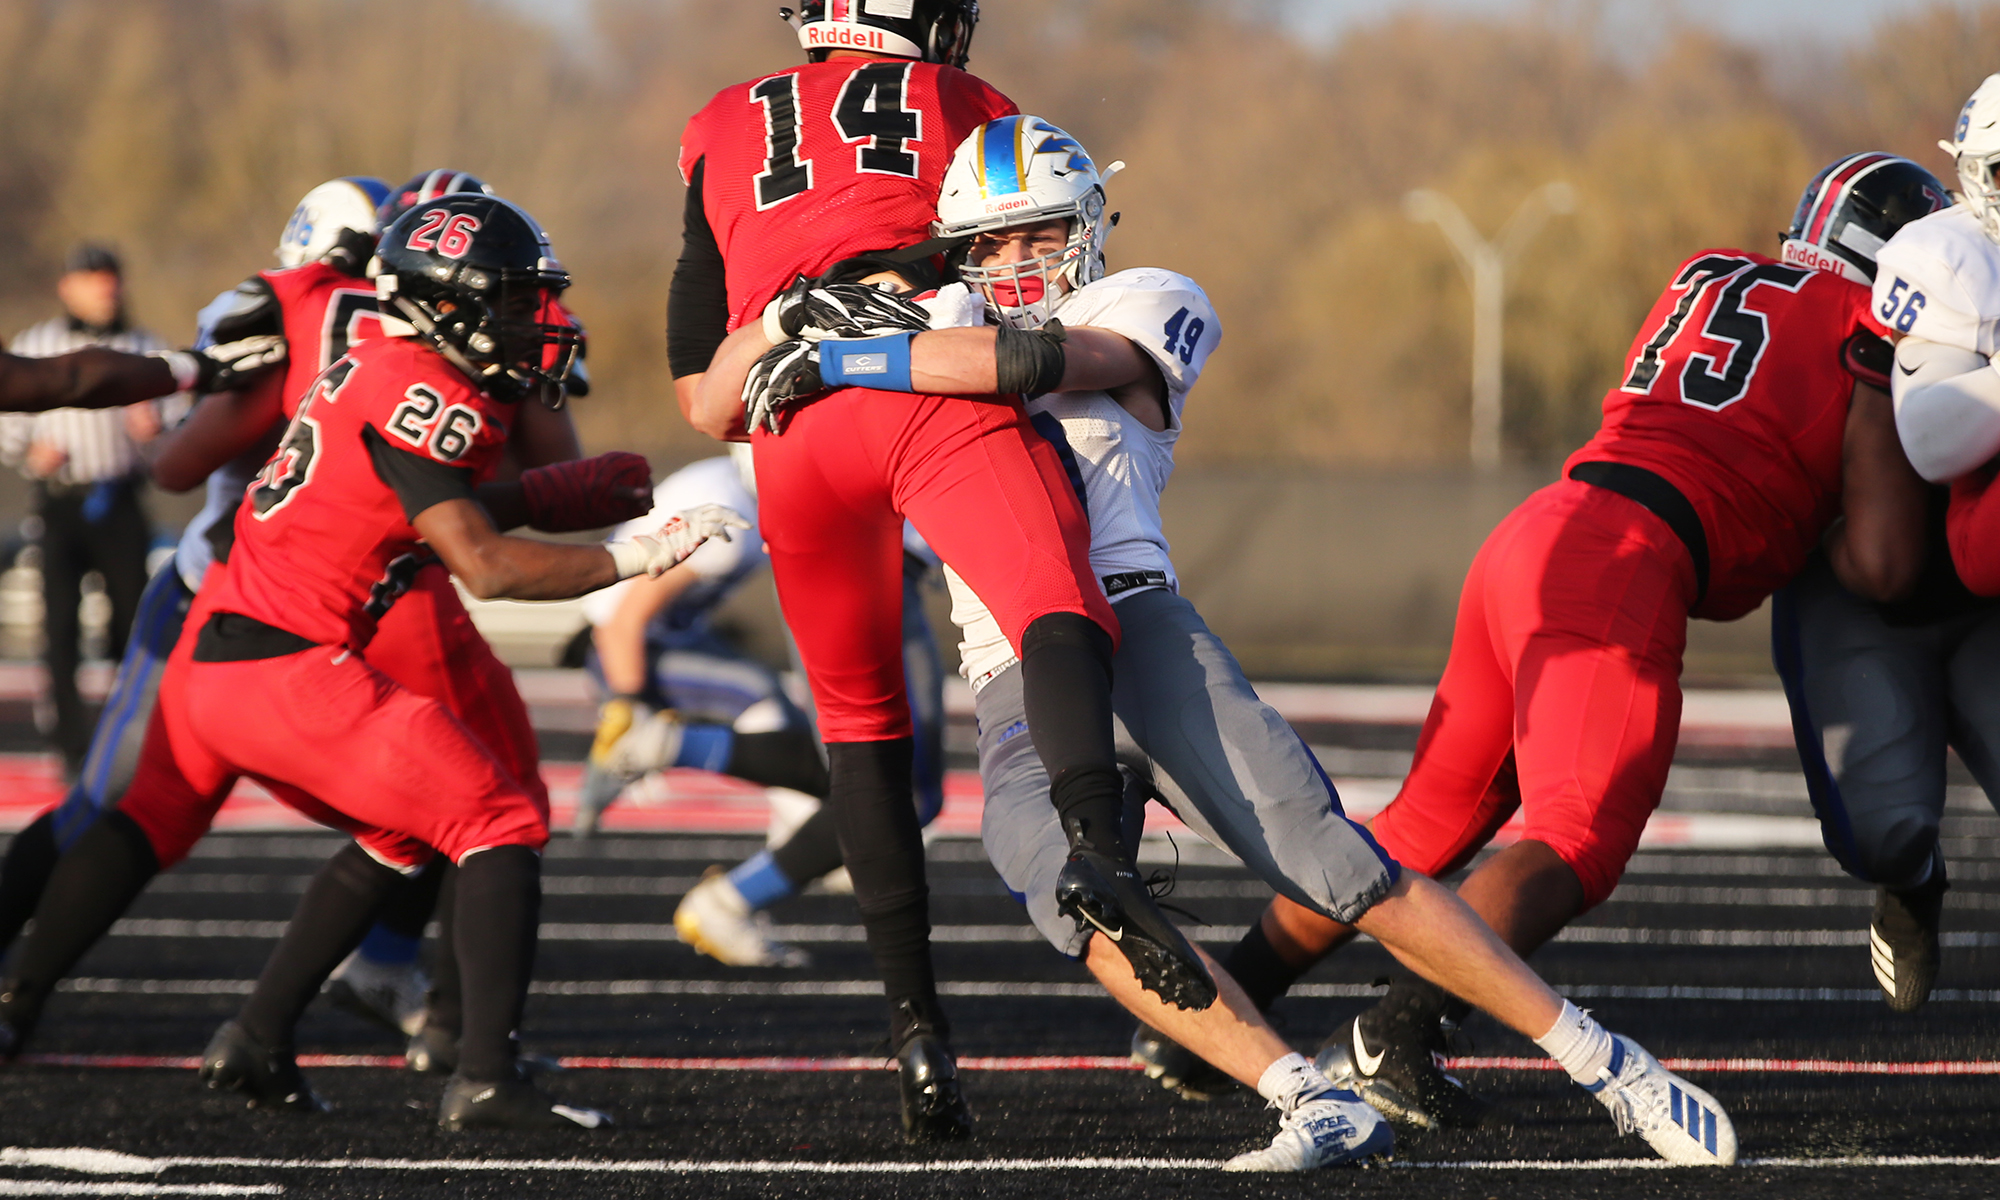 Warren's Seamus Mellican (49) puts a hit on Bolingbrook quarterback Devyn Suggs (14) as he releases the ball.